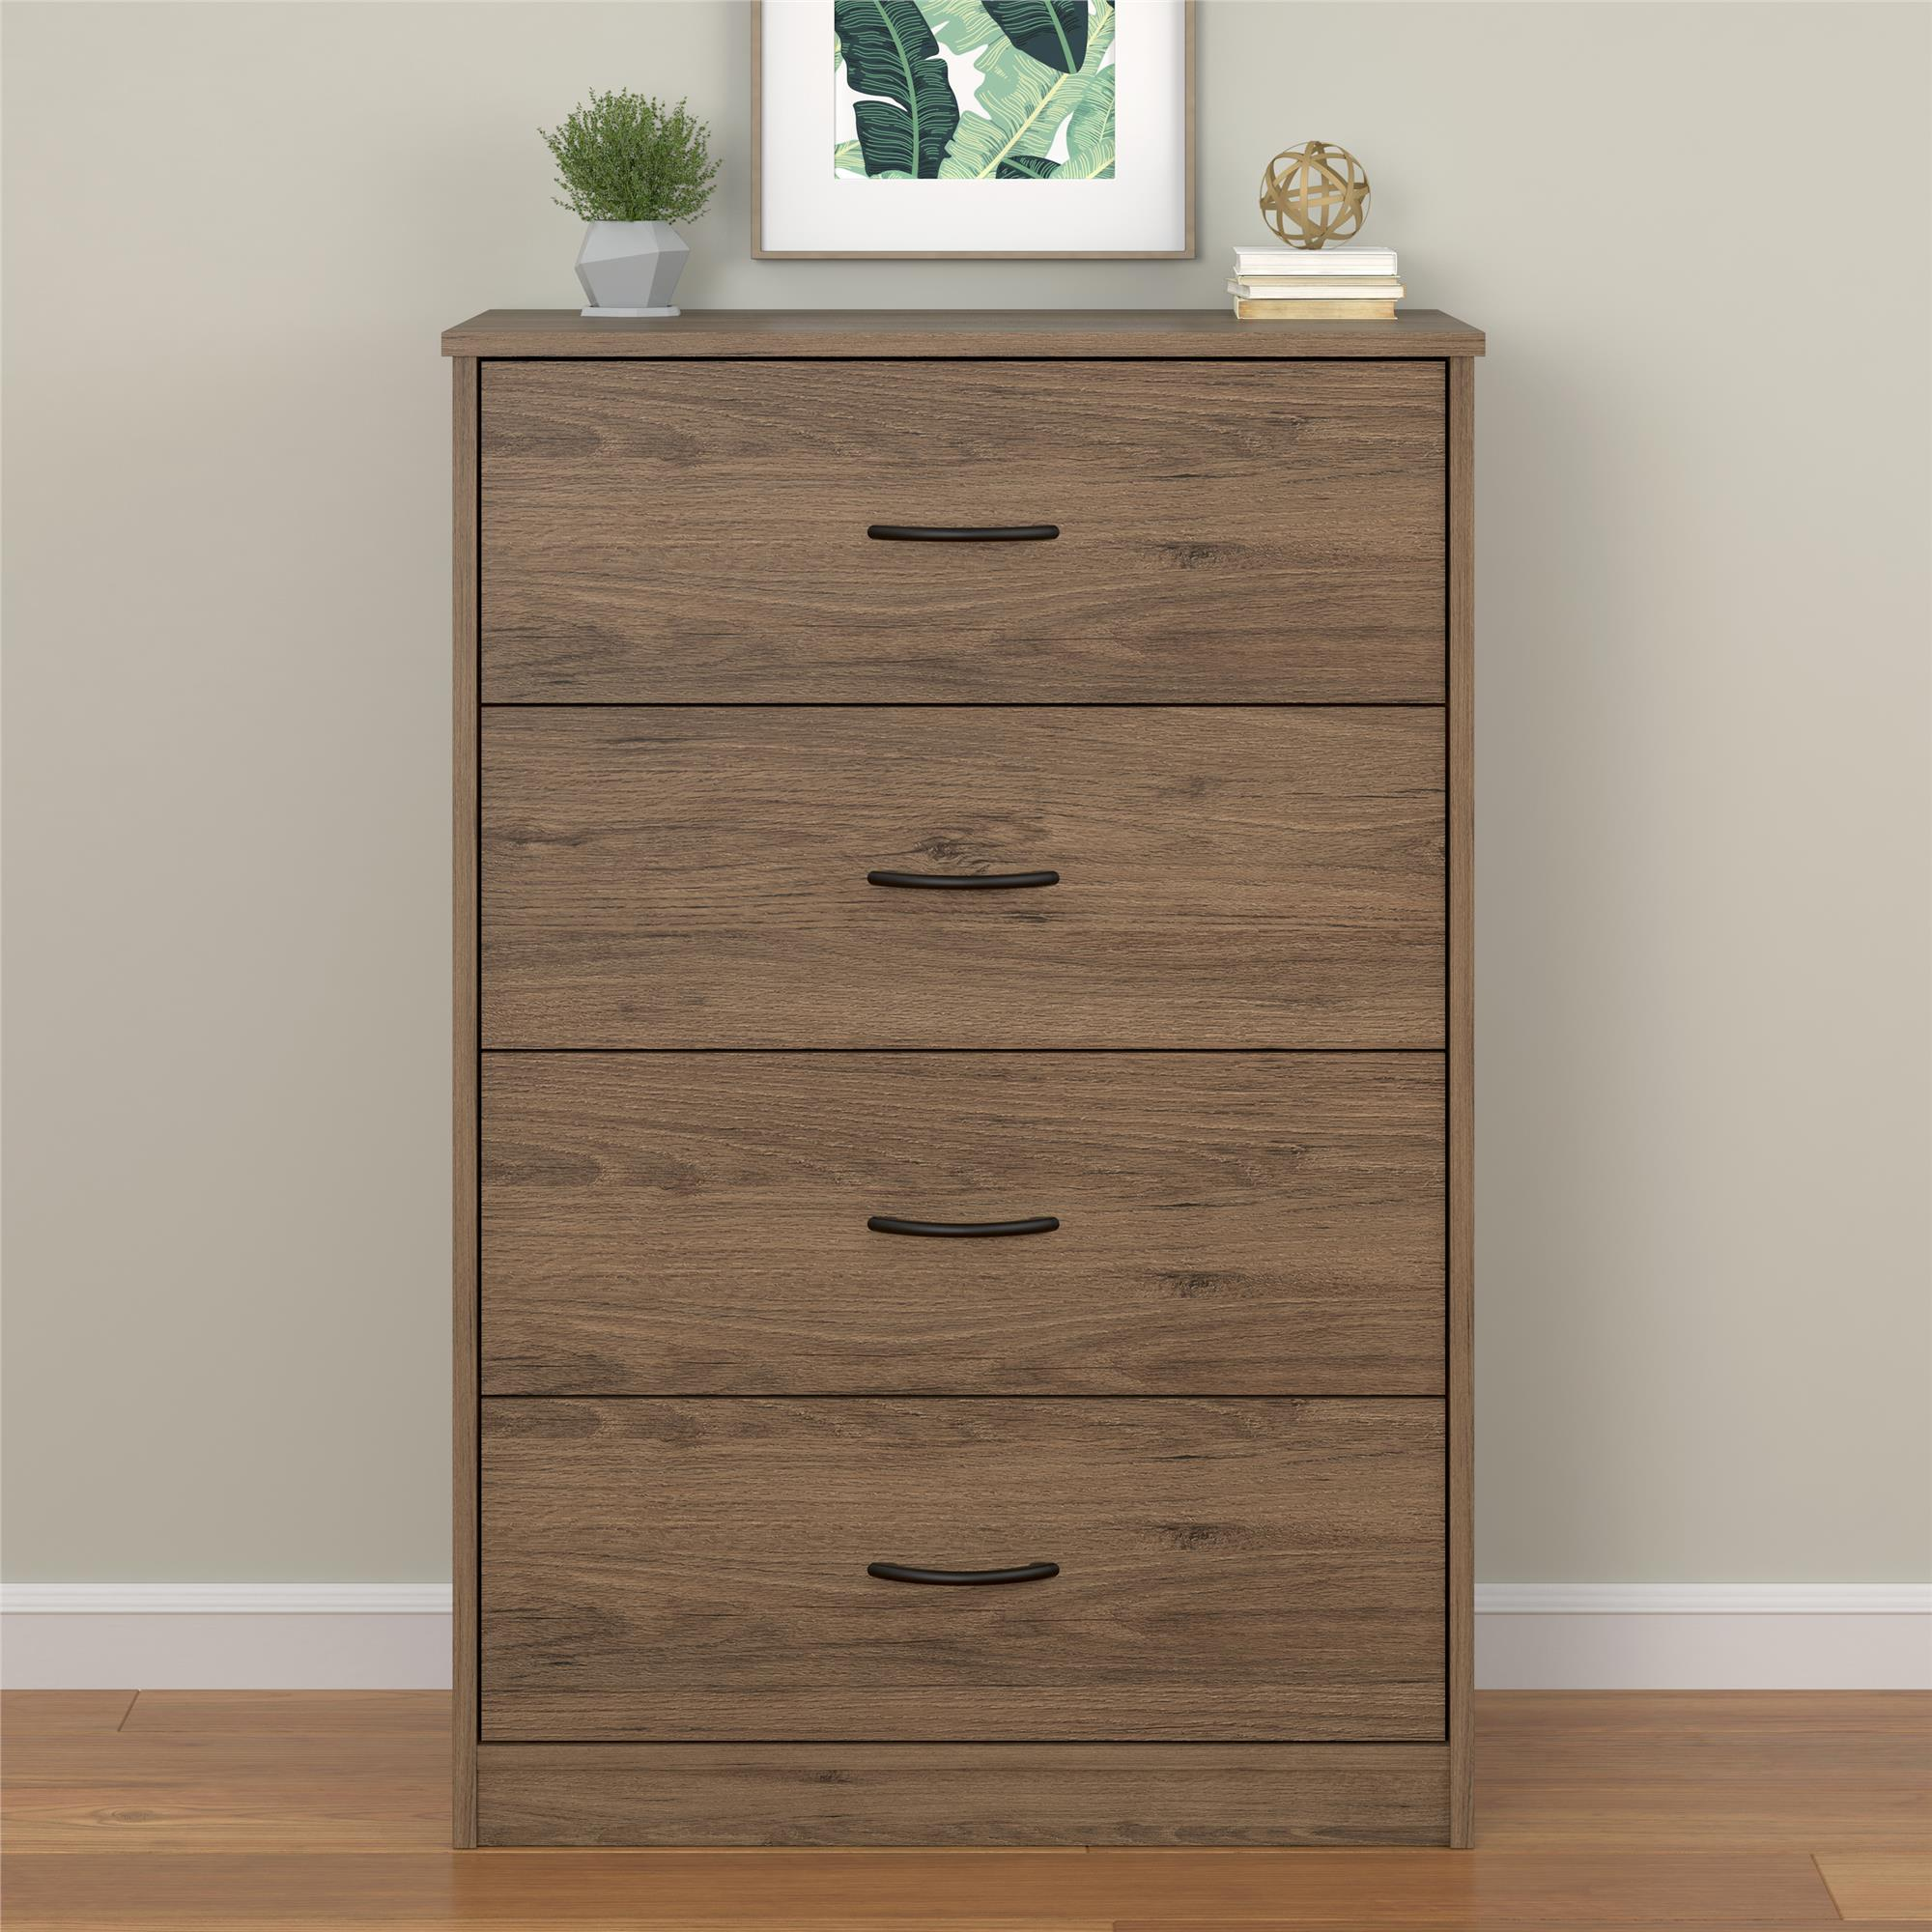 Bedroom Storage Dresser Chest 4 Drawer Modern Wood Furniture Gray Rustic Oak